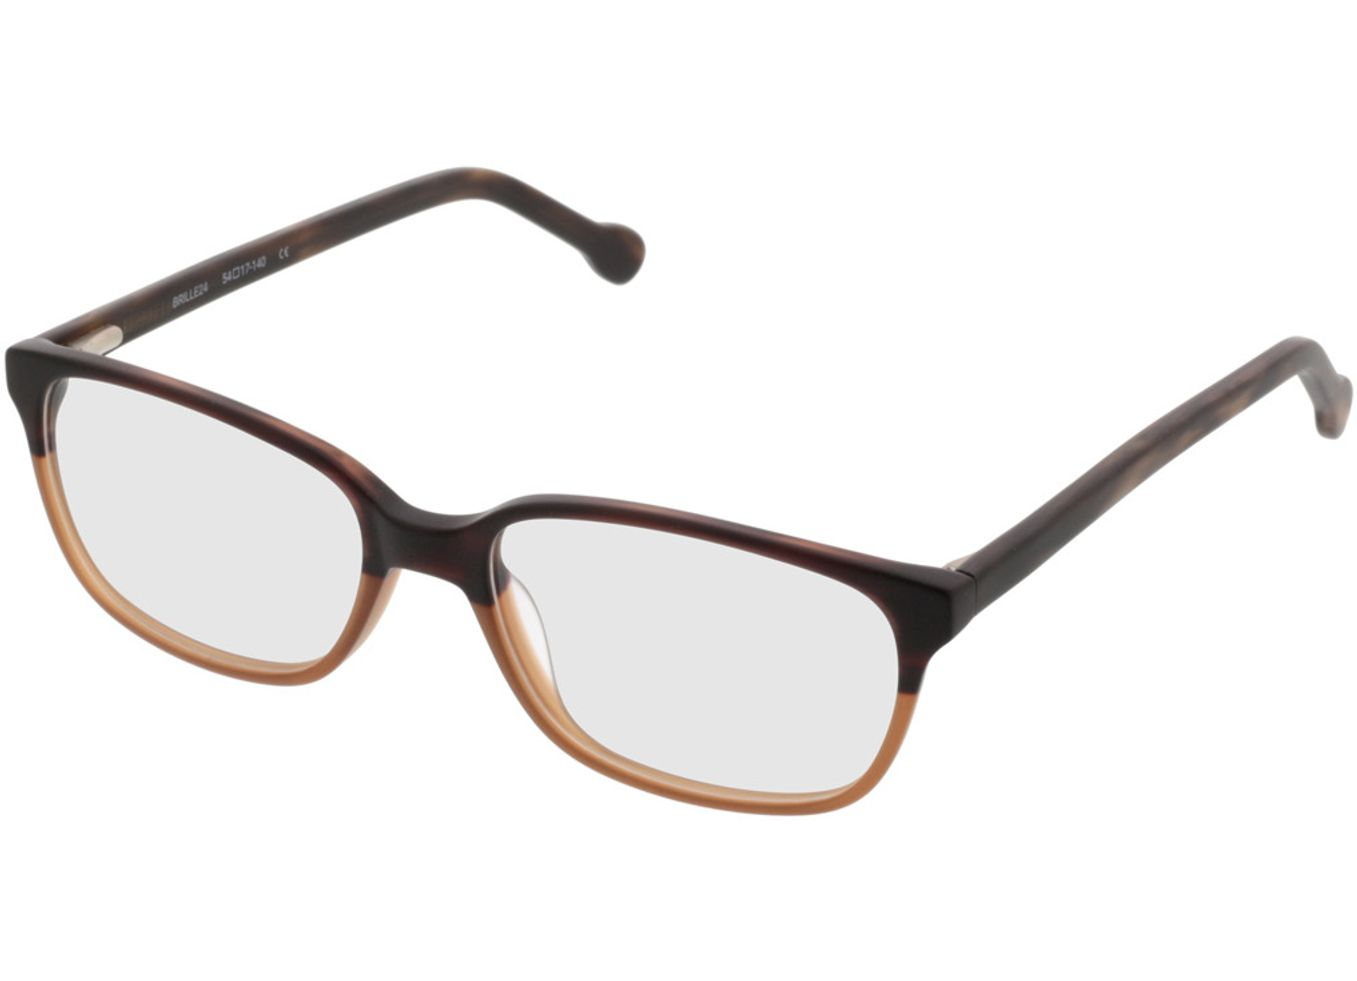 3990-singlevision-0000 Trient-braun Gleitsichtbrille, Vollrand Brille24 Collection